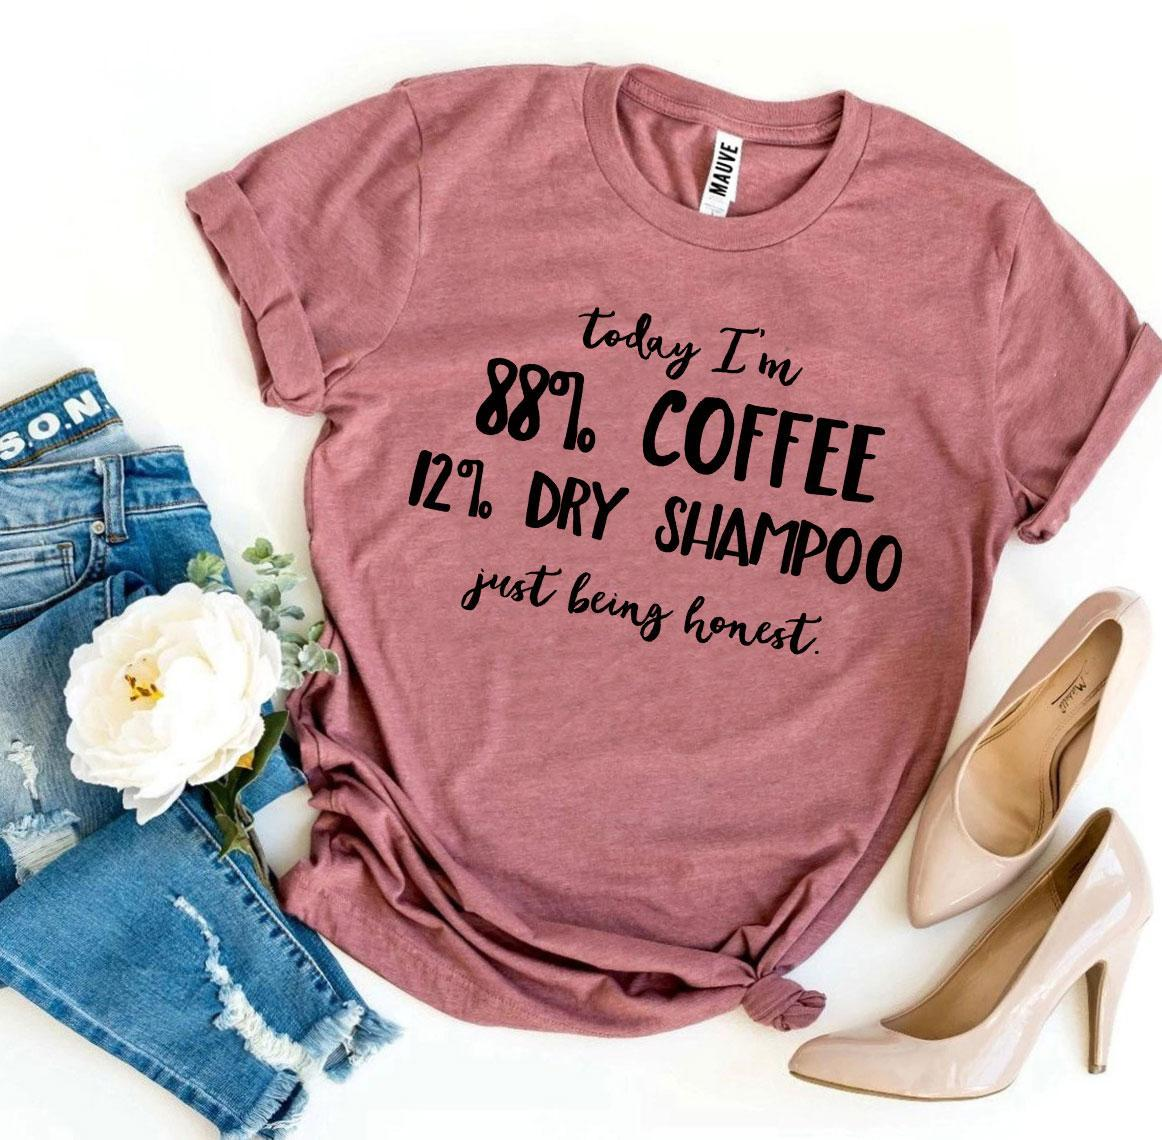 Today I'm 88% Coffee T-shirt - Cream and Sugar Coffee House & Brewing Co.